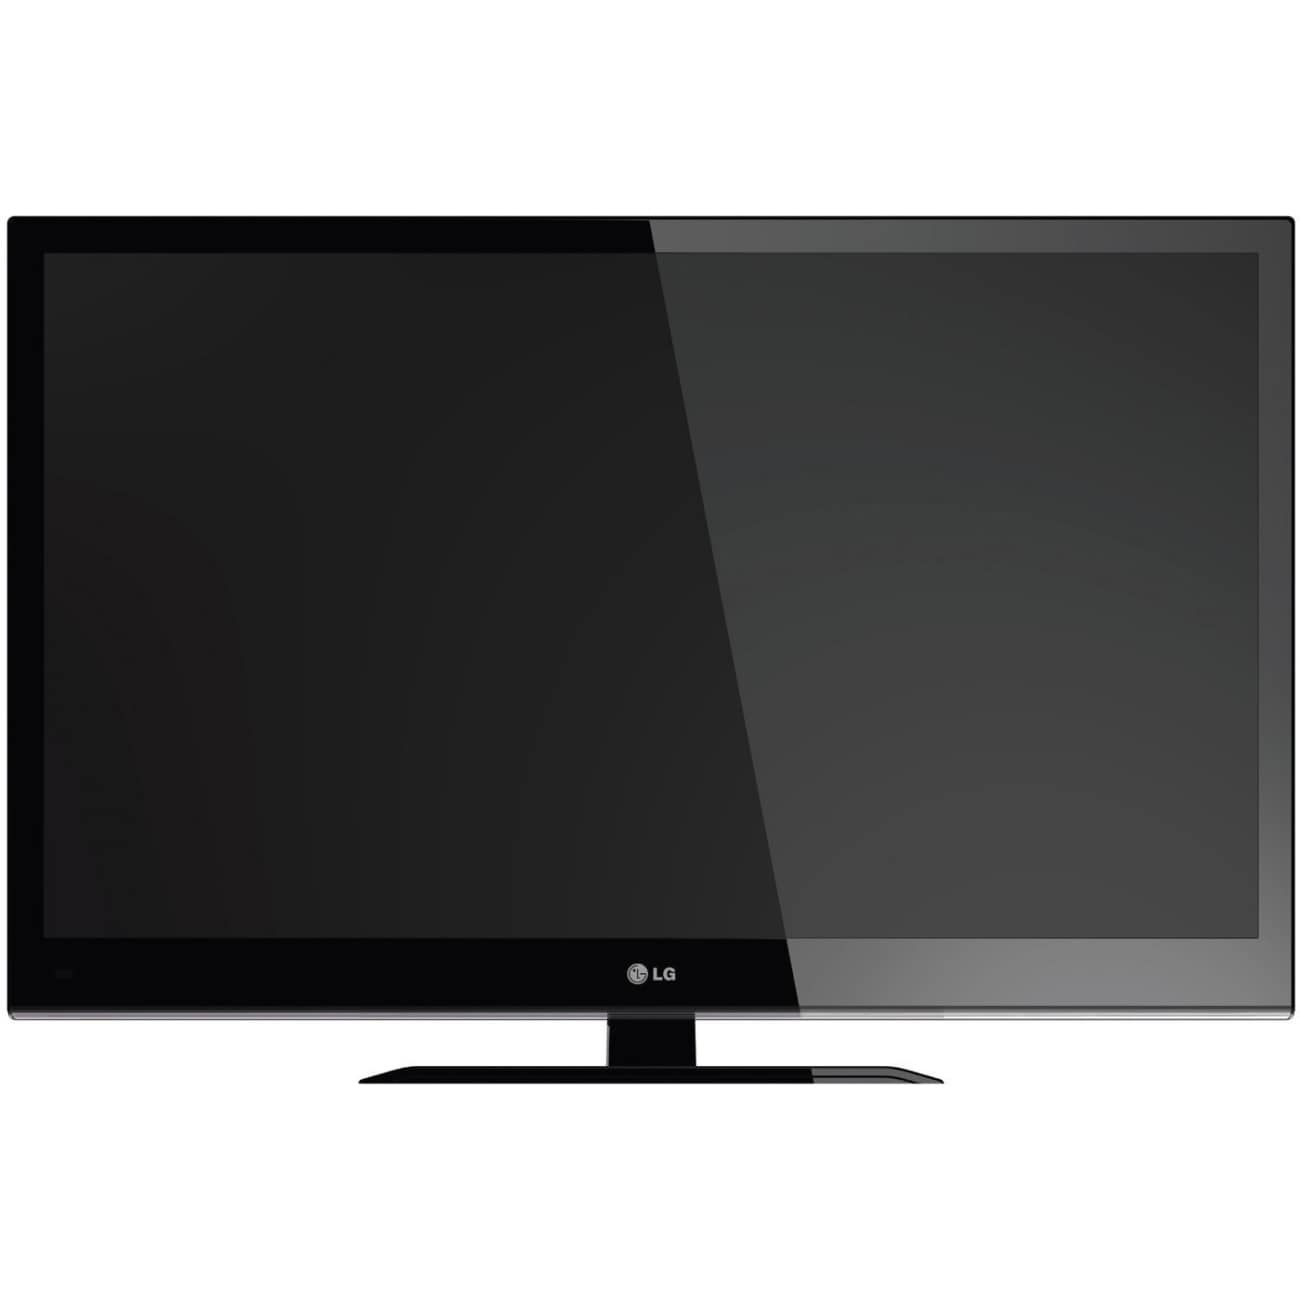 "LG 55LV4400 55"" Factory refurbished 1080p LED-LCD TV - 16:9 - HDTV 1080p - 120 Hz"